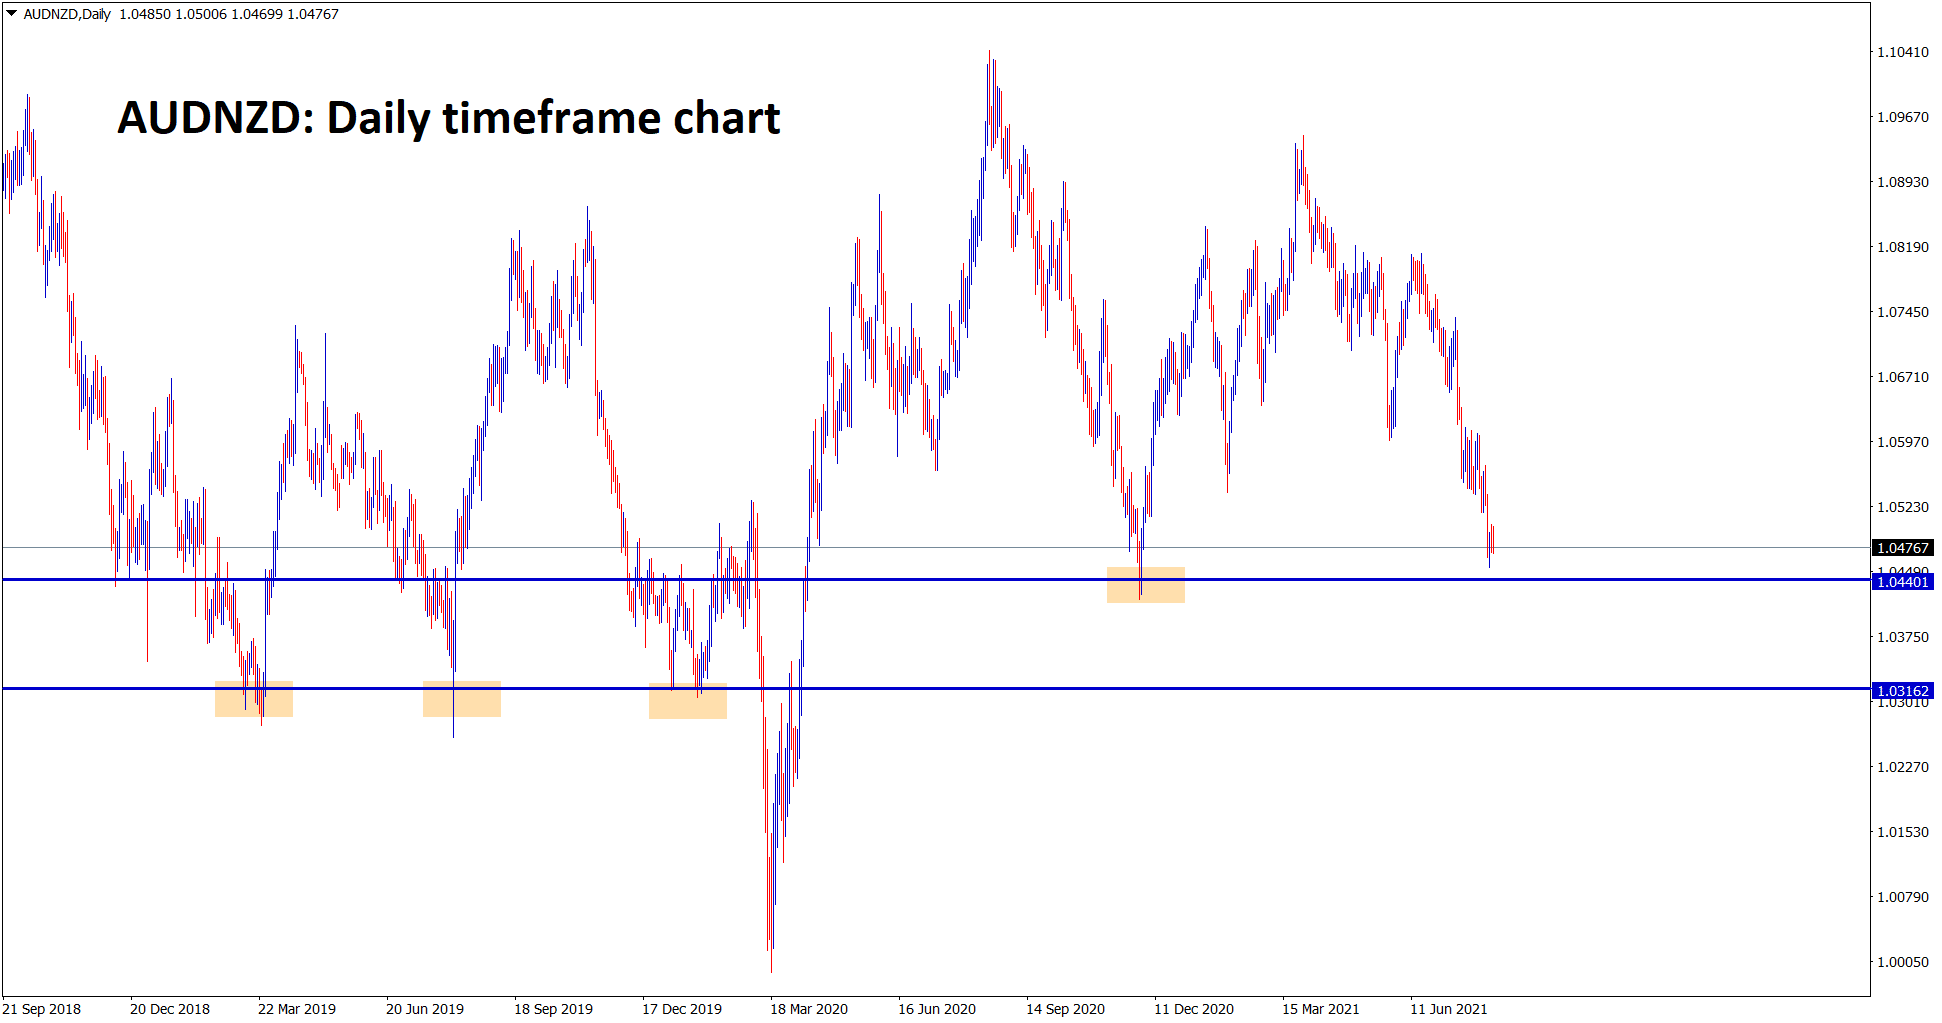 AUDNZD is falling towards the support area